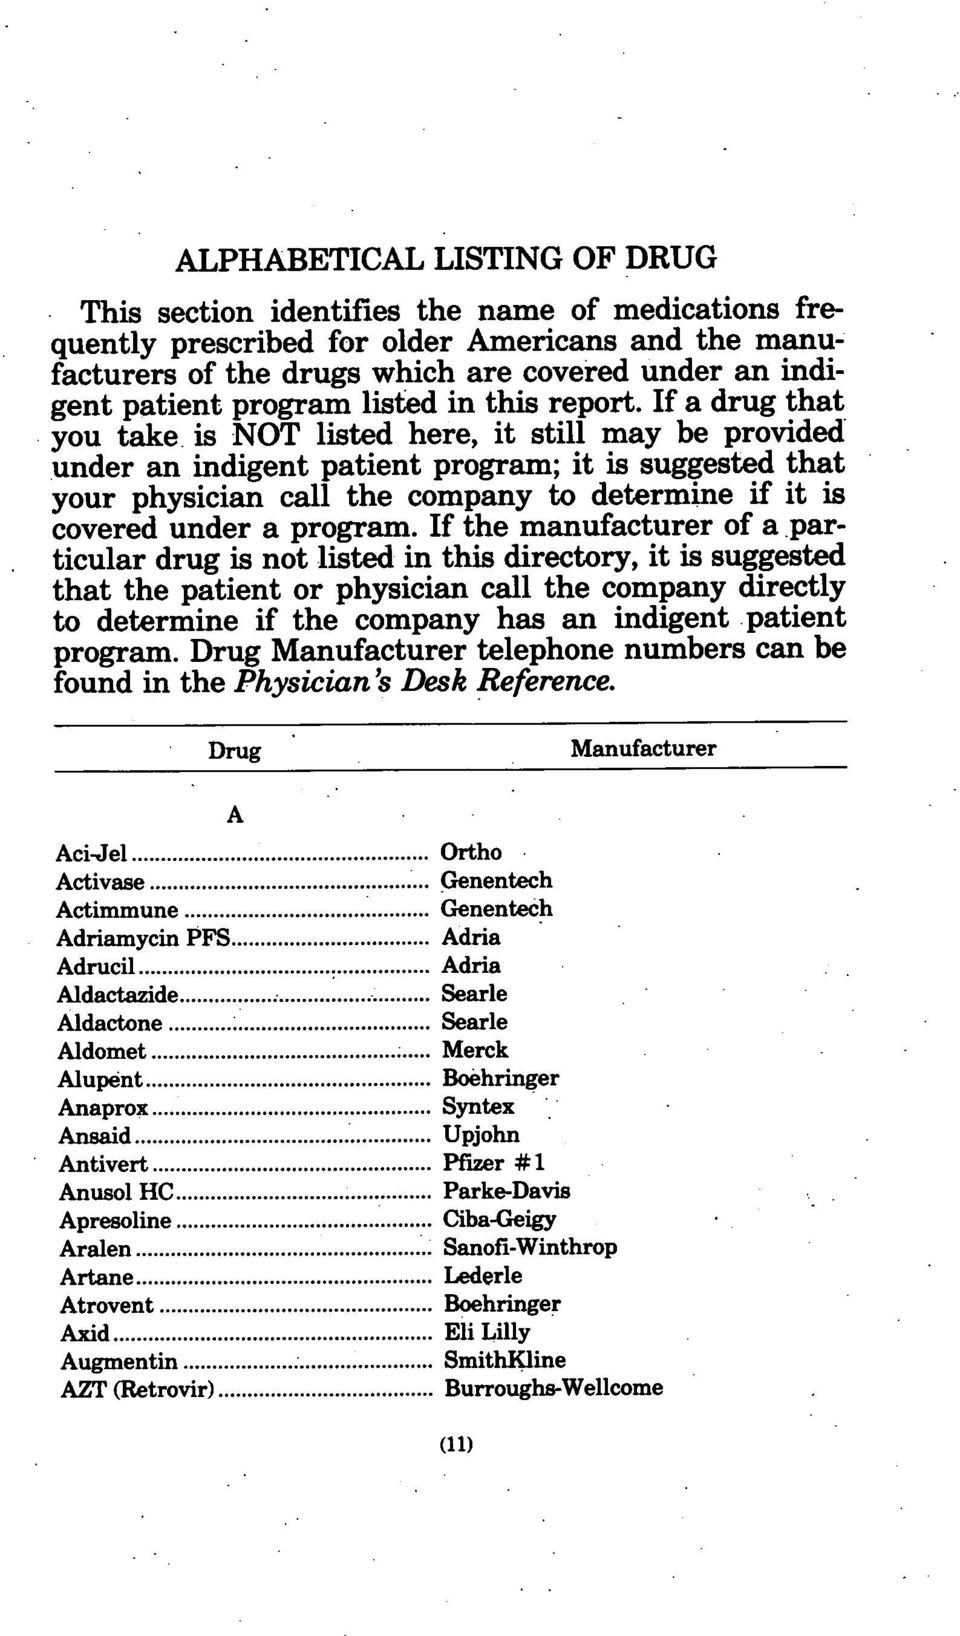 If a drug that you take is NOT listed here, it still may be provided under an indigent patient program; it is suggested that your physician call the company to determine if it is covered under a